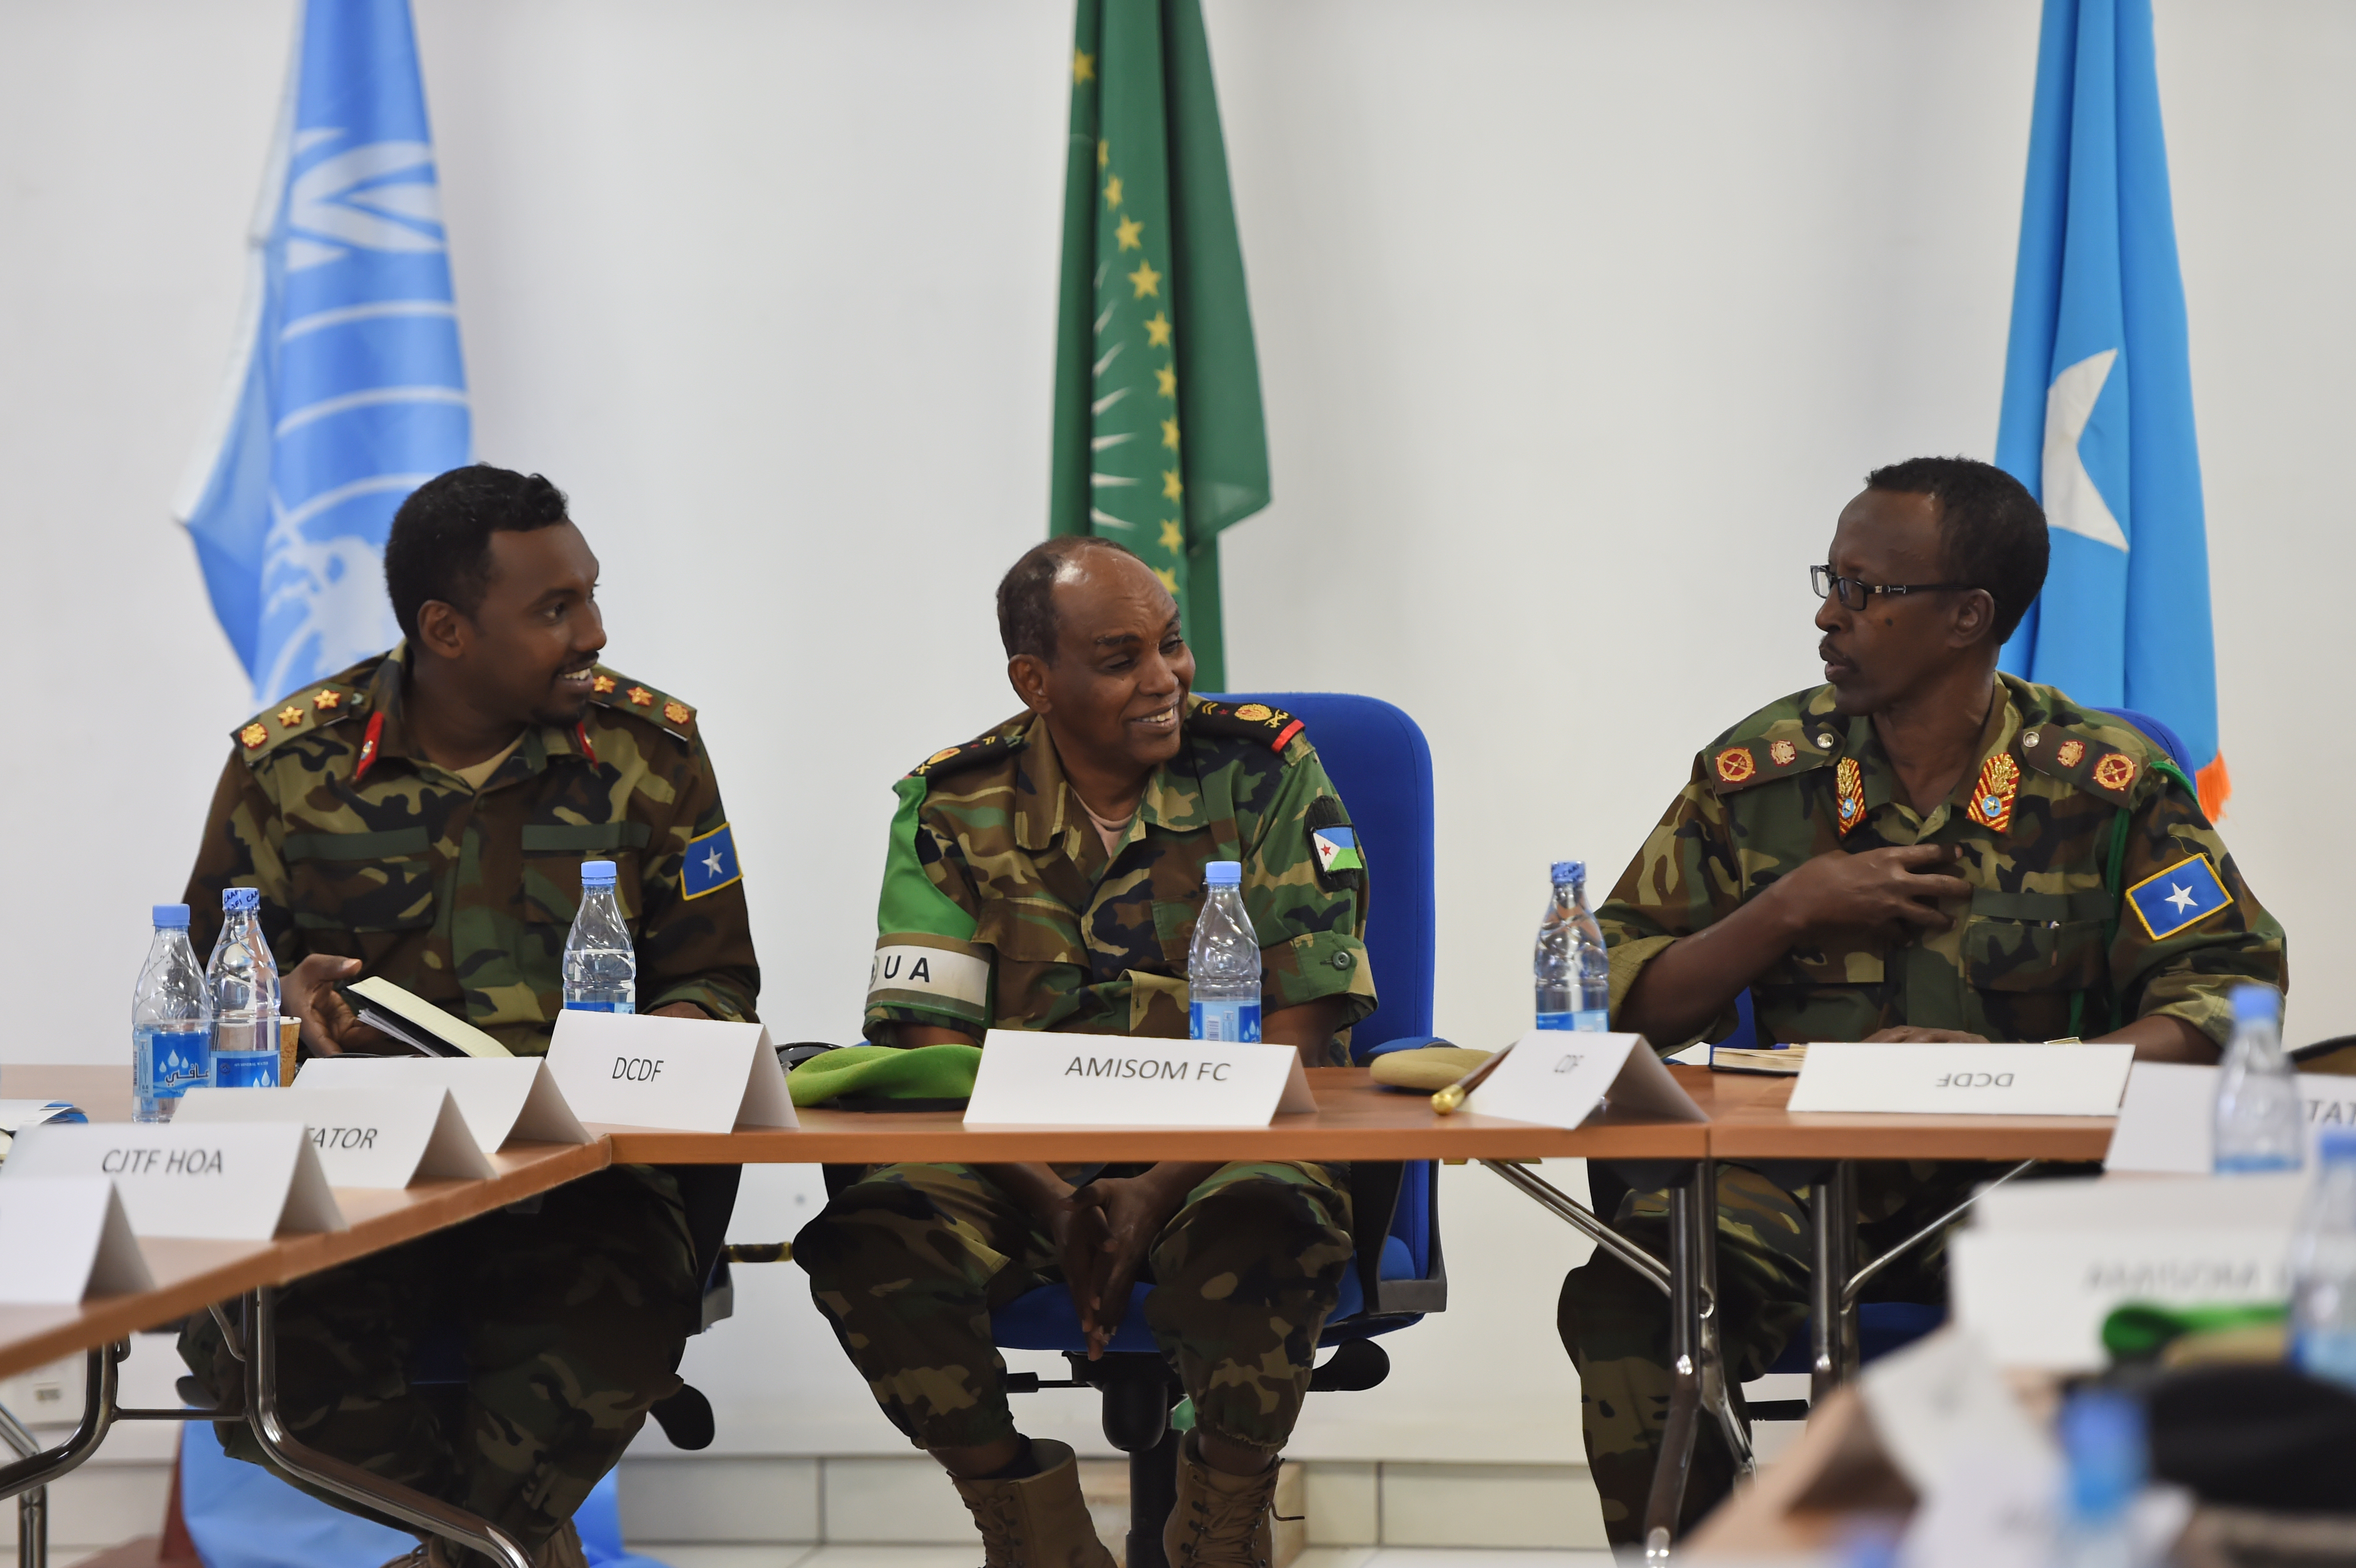 Somali National Army Chief of Defense Forces Maj. Gen. Mohammed Adan Ahmed, right, and Chief of Staff Col. Ahmed Mohammed, left, converse with African Union Mission in Somalia Force Commander Lt. Gen. Osman Noor Soubagleh during the SNA Symposium in downtown Mogadishu, Jan. 12, 2017. The symposium is part of an ongoing international effort to aid security conditions throughout Somalia by fostering the growth and revitalization of the national military defense force, which disbanded following the collapse of the country's central government in 1991.